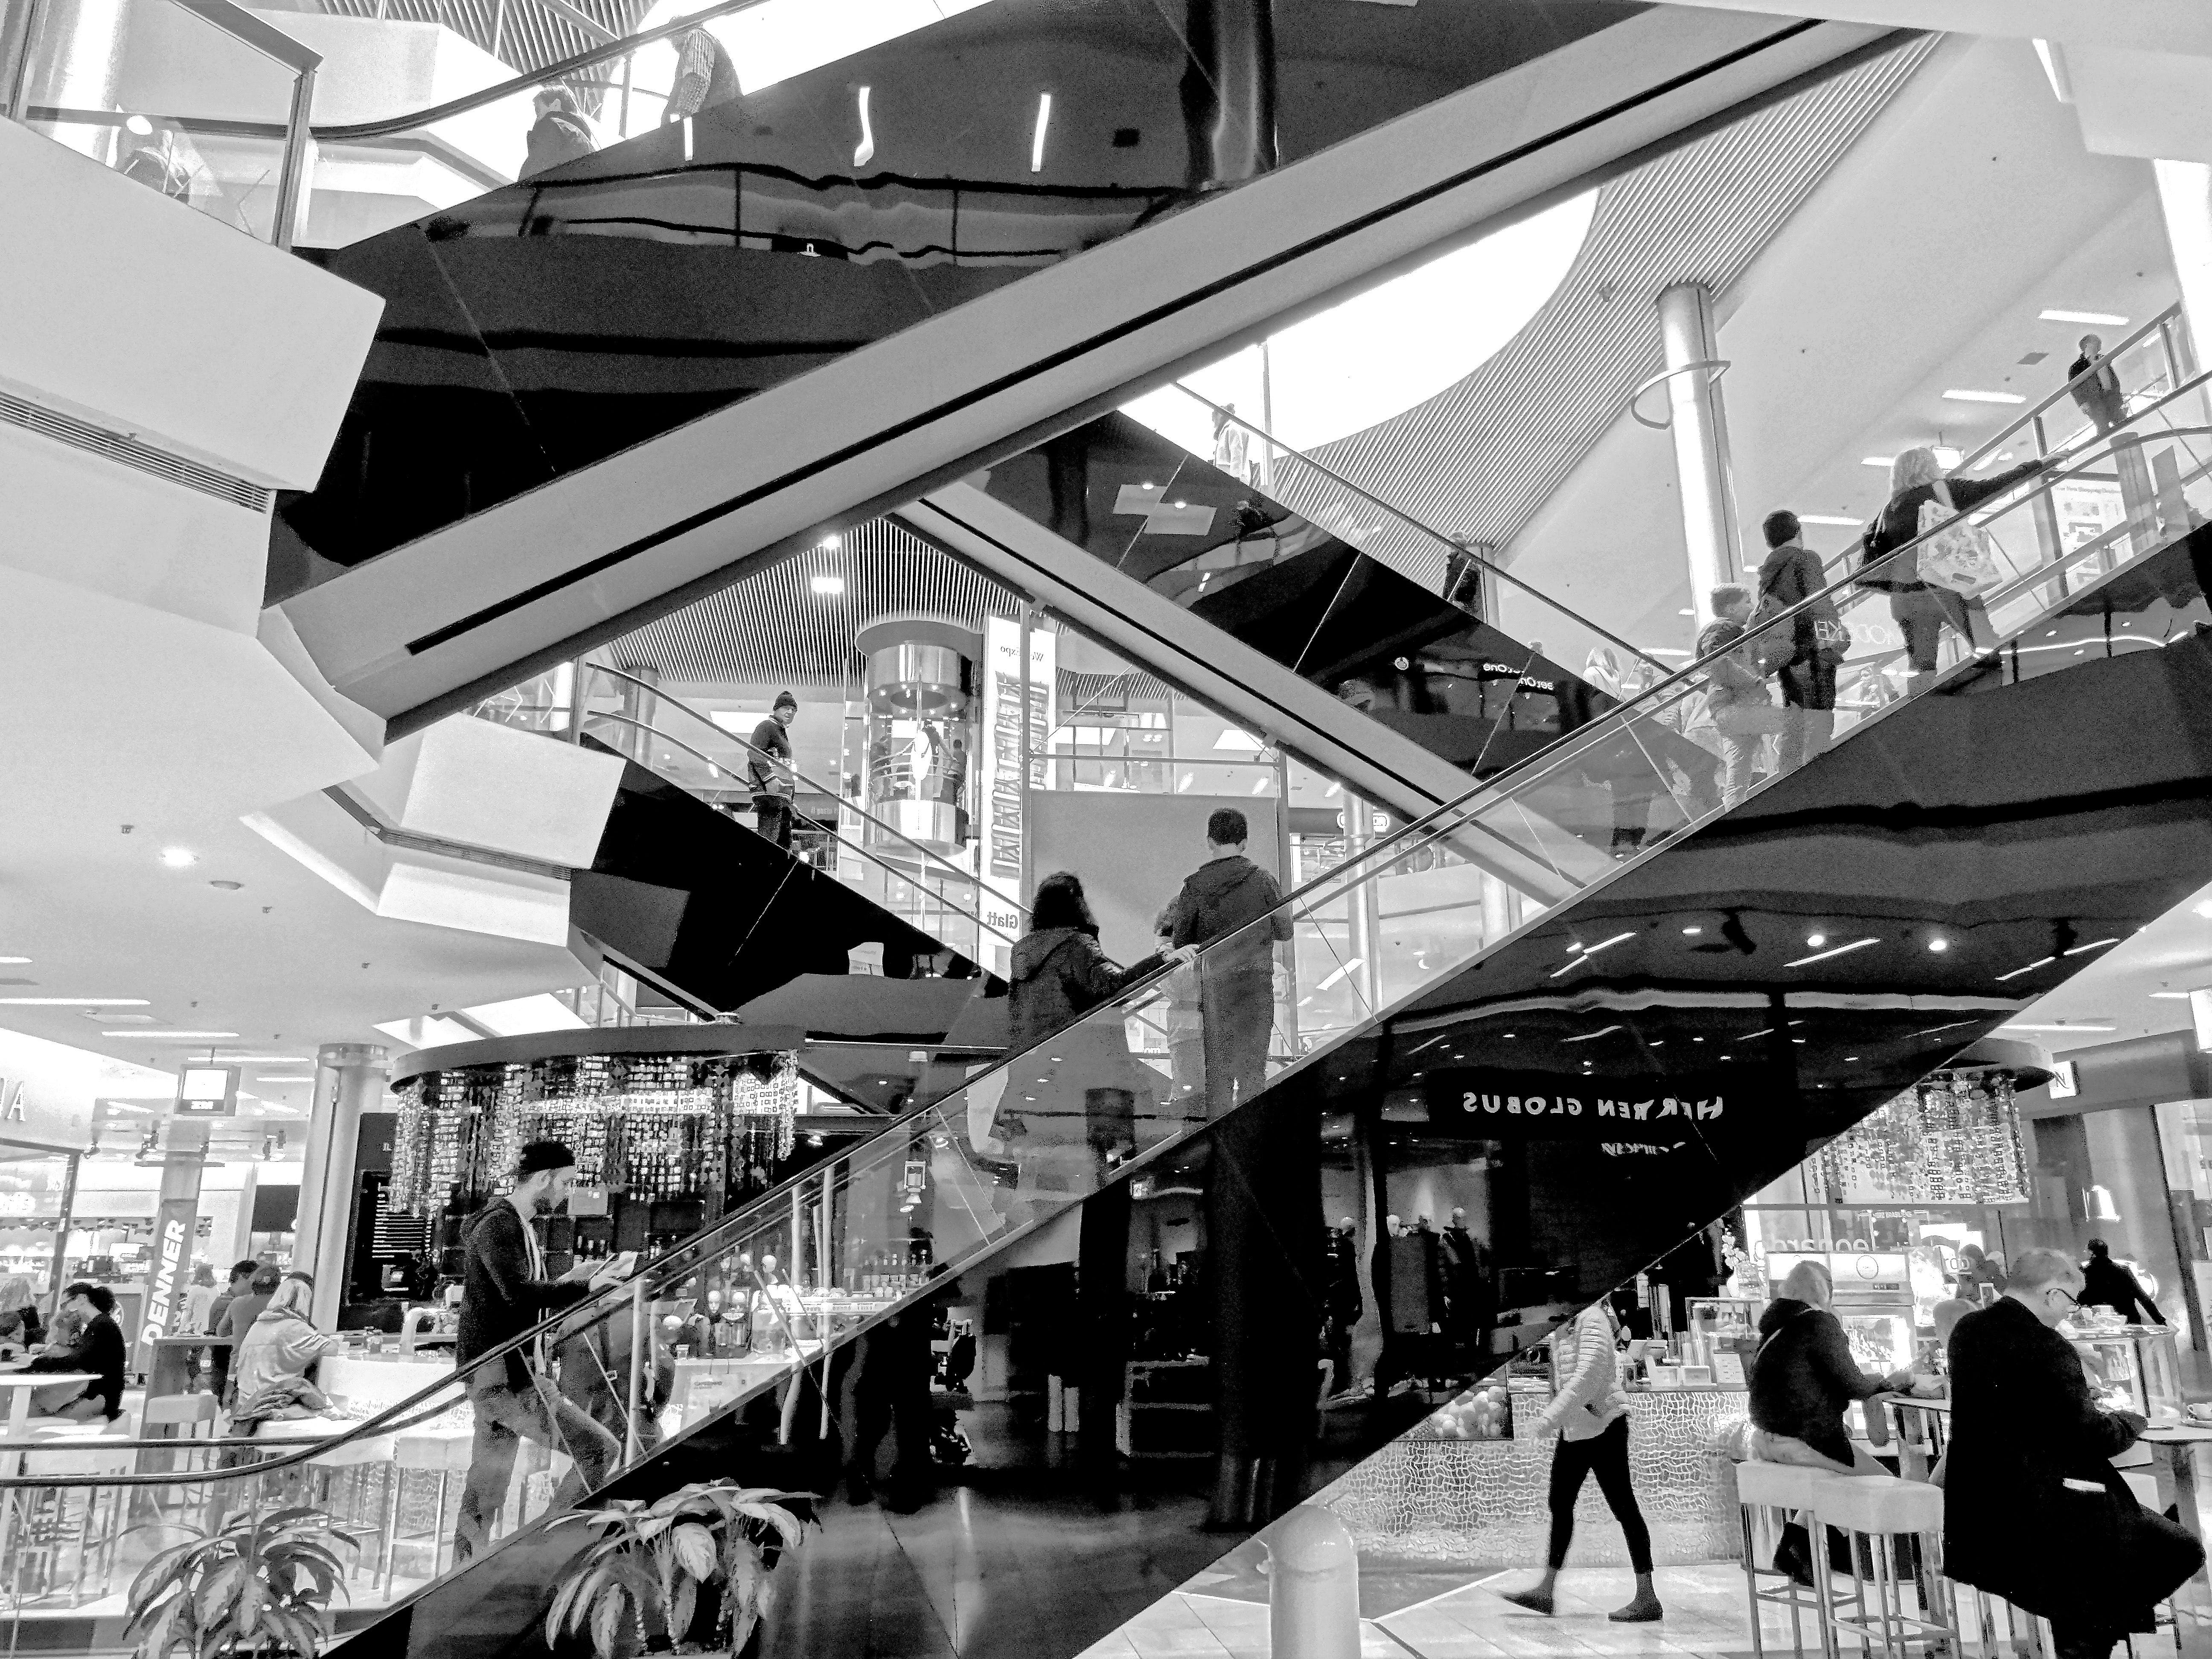 Grayscale Photography of People Standing on Escalator